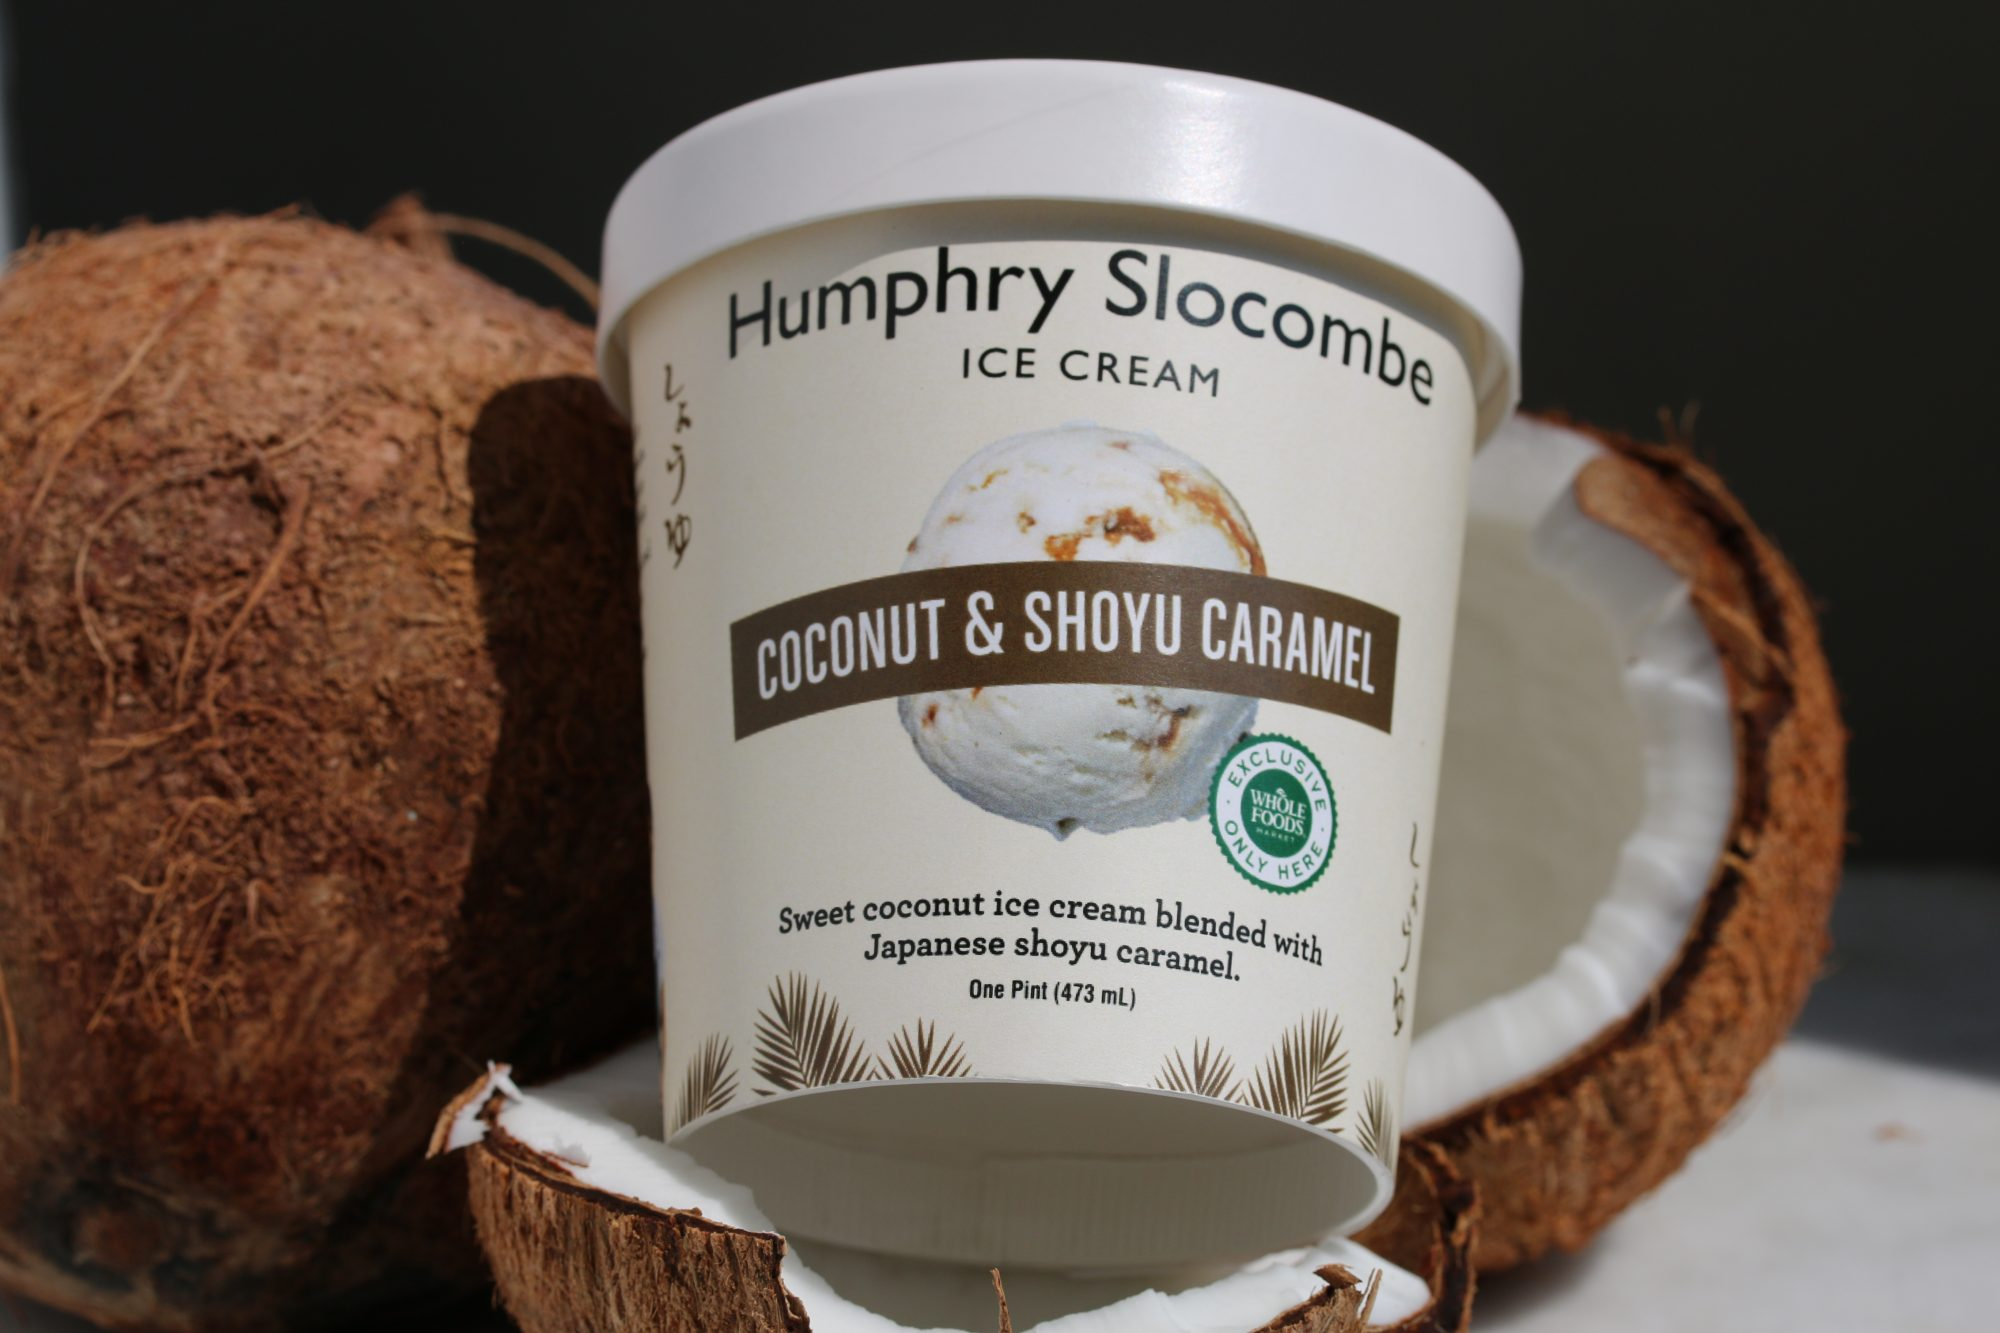 Coconut & Shoyu Caramel at Whole Foods Market